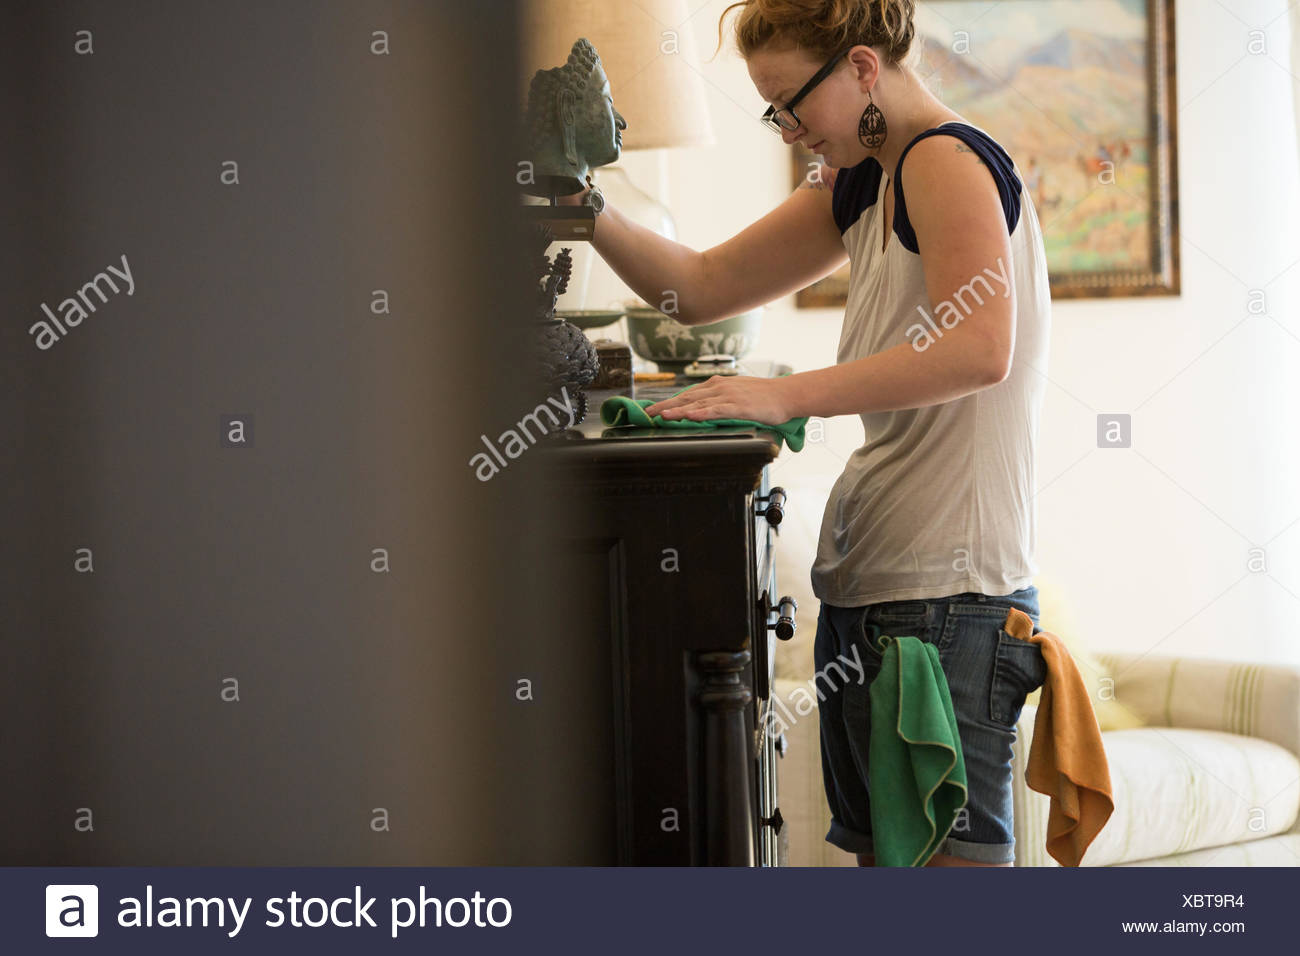 Young woman cleaning surfaces with green cleaning products Stock Photo